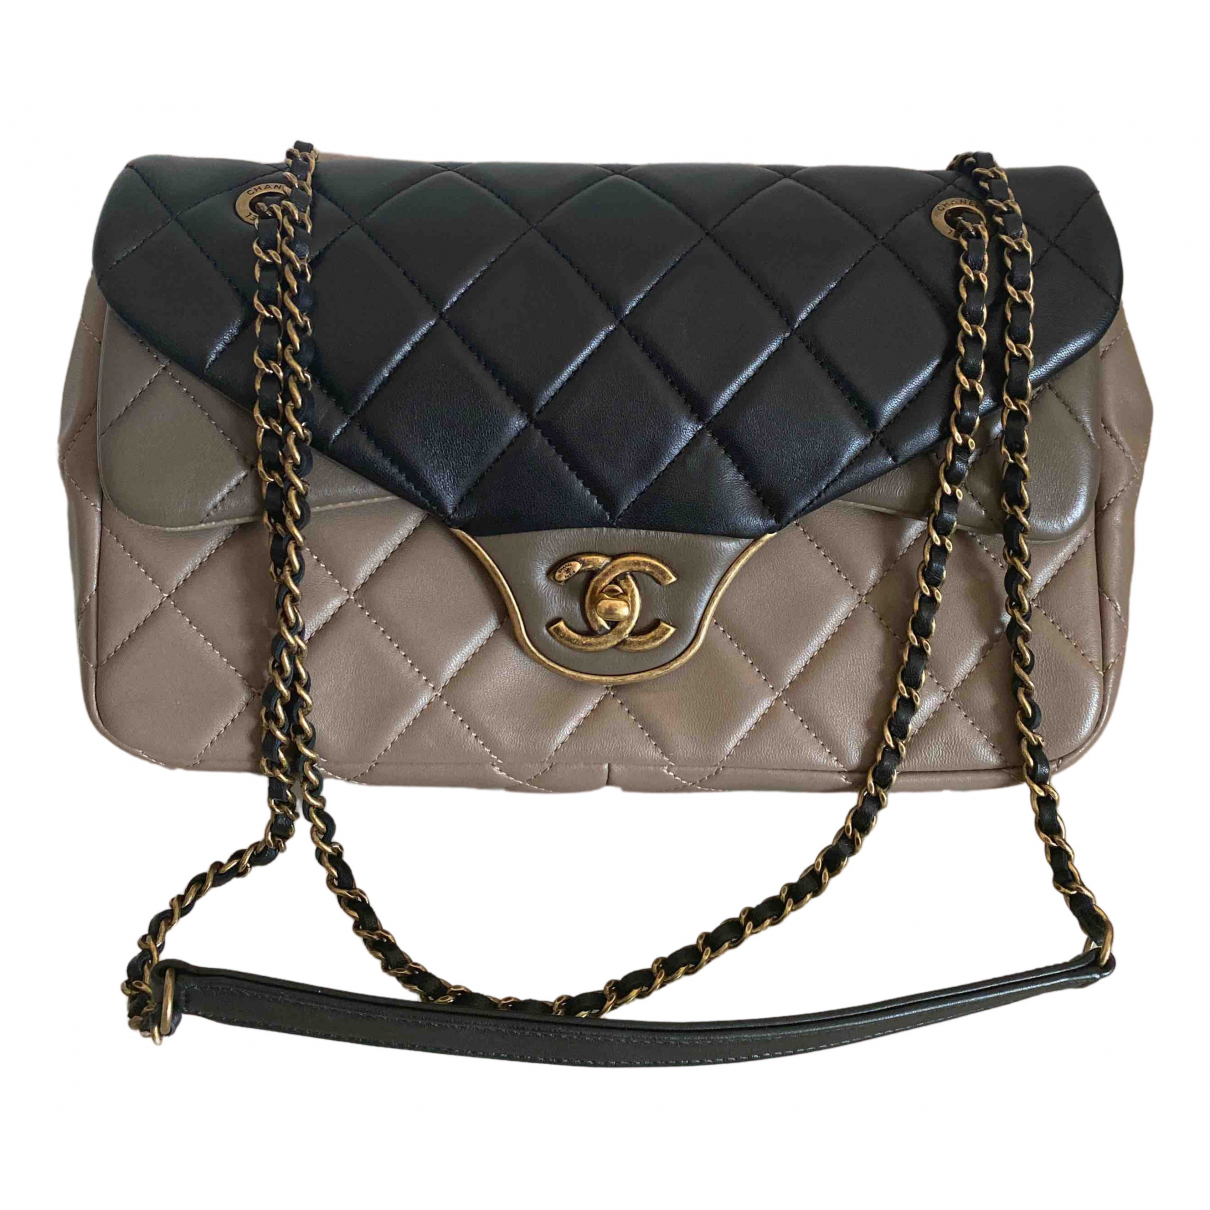 Chanel Timeless/Classique Multicolour Leather handbag for Women \N